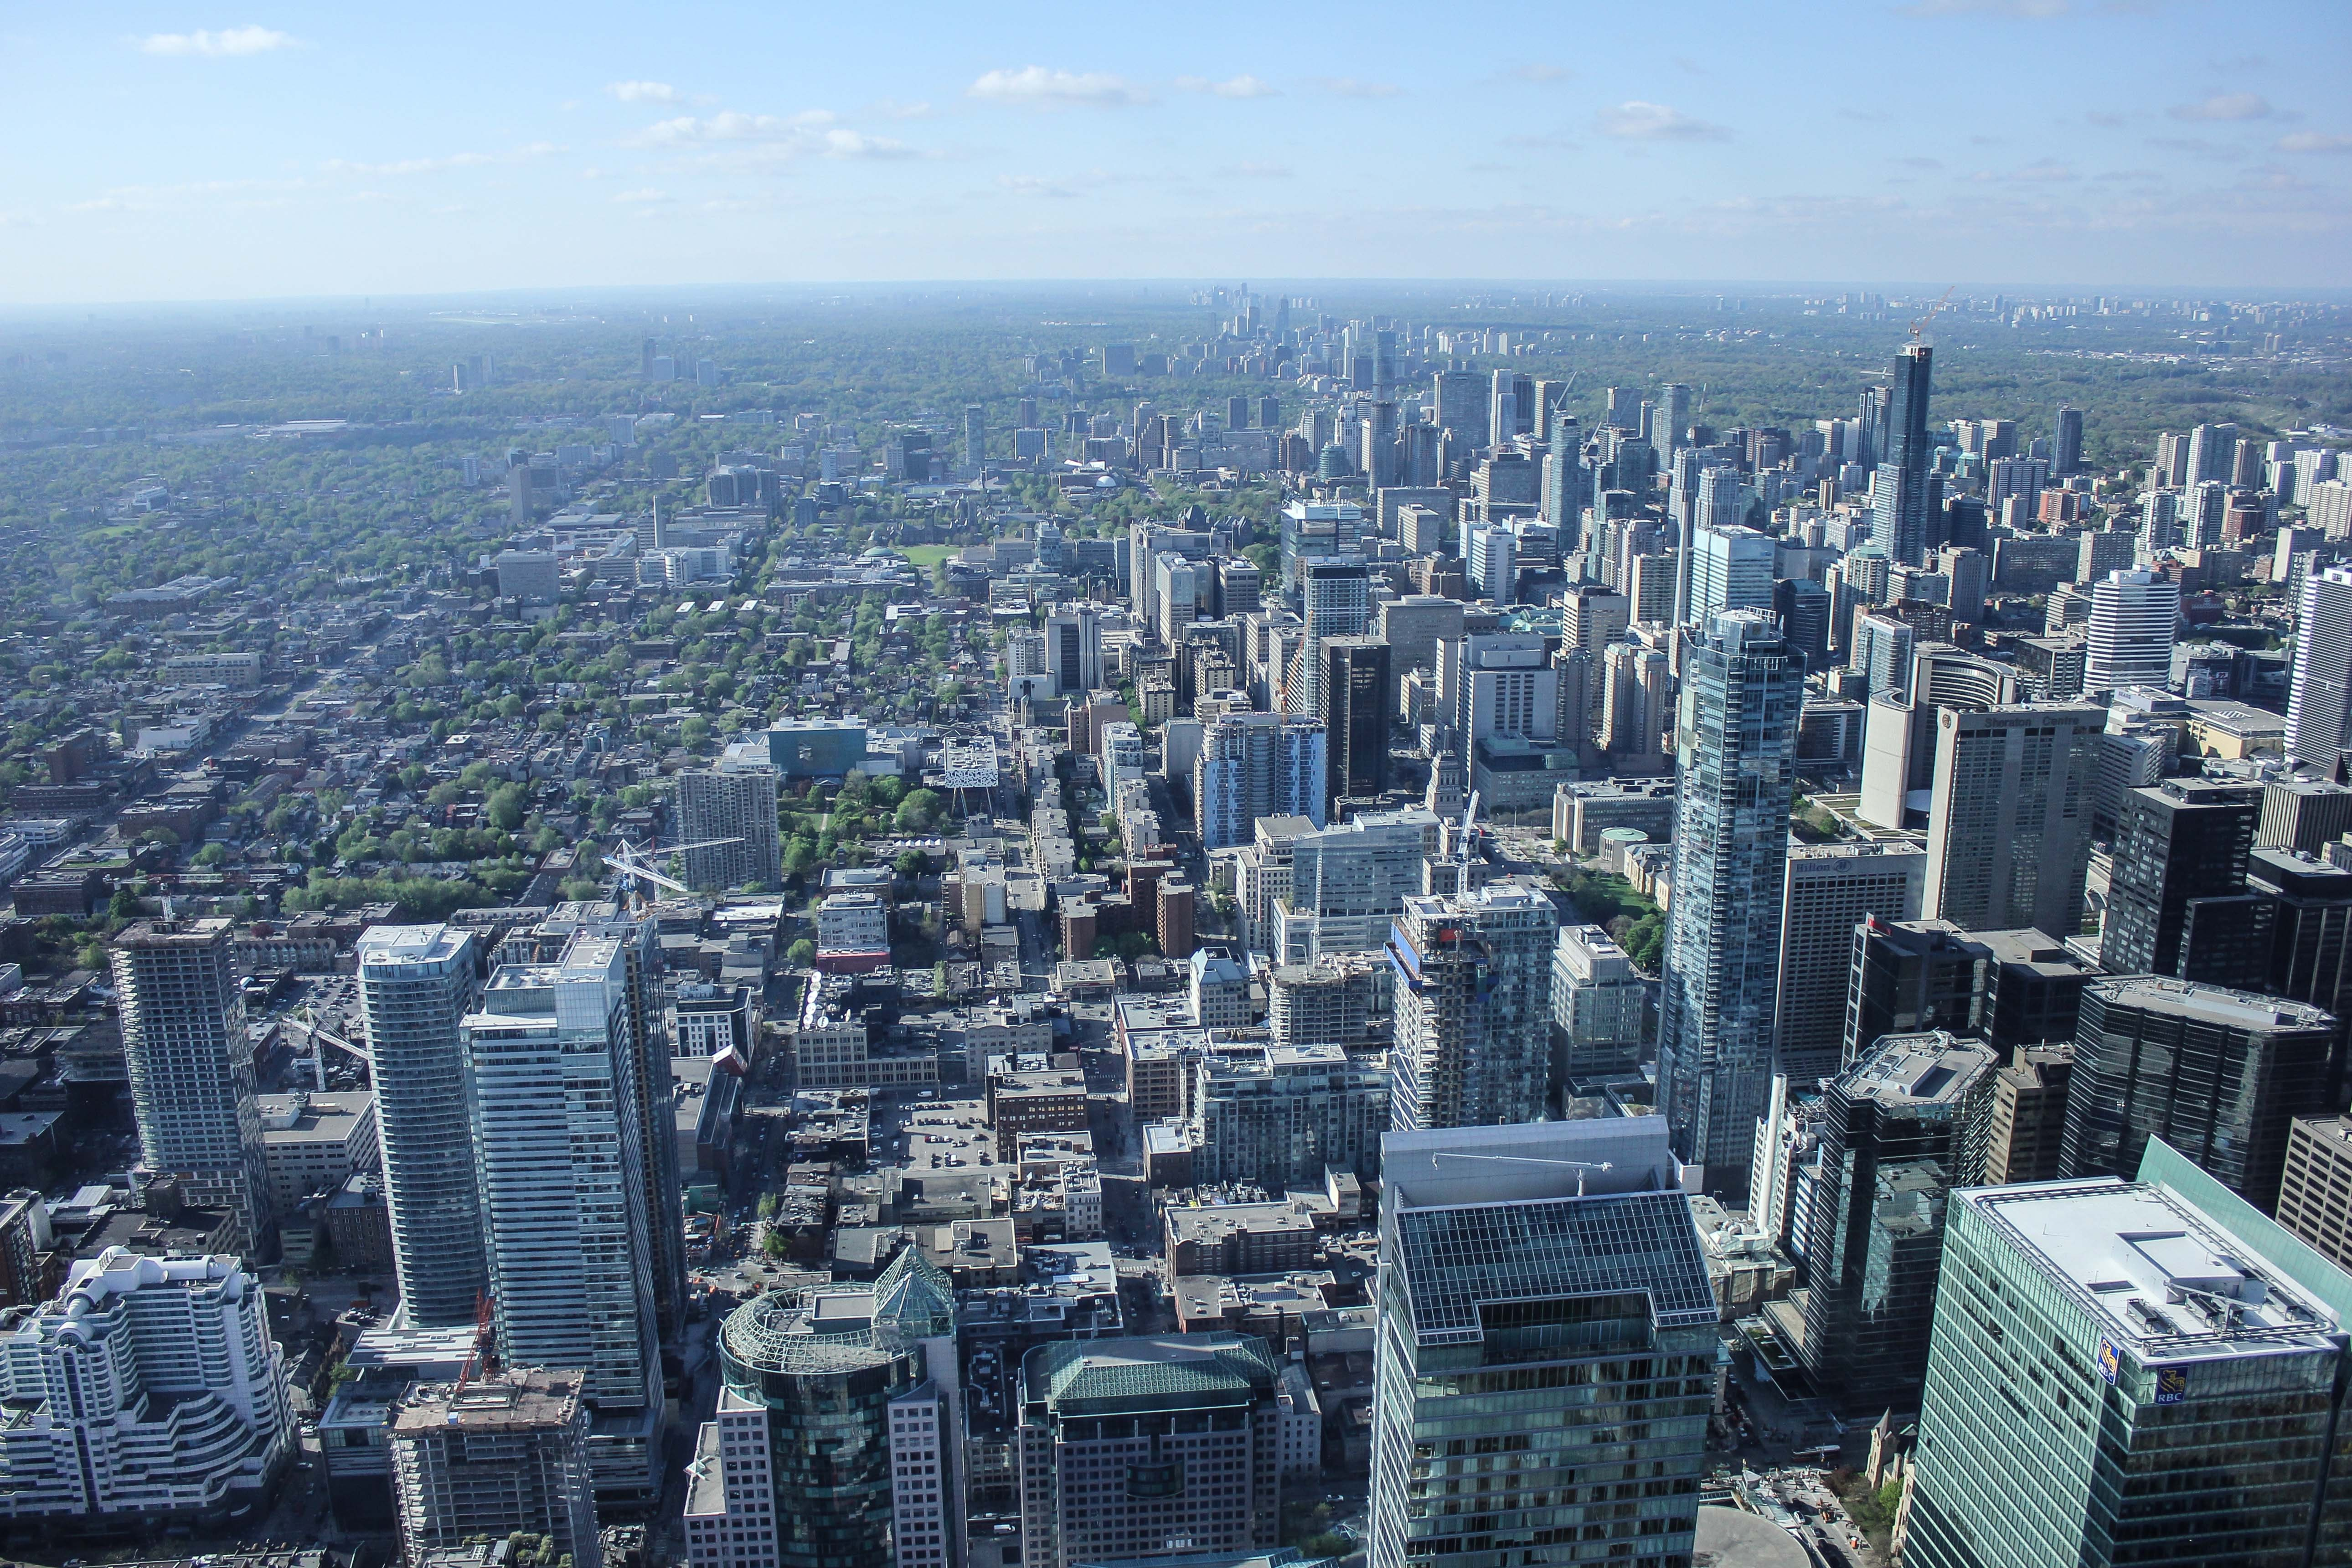 aerial view photography of city buildings under clear blue sky during daytime